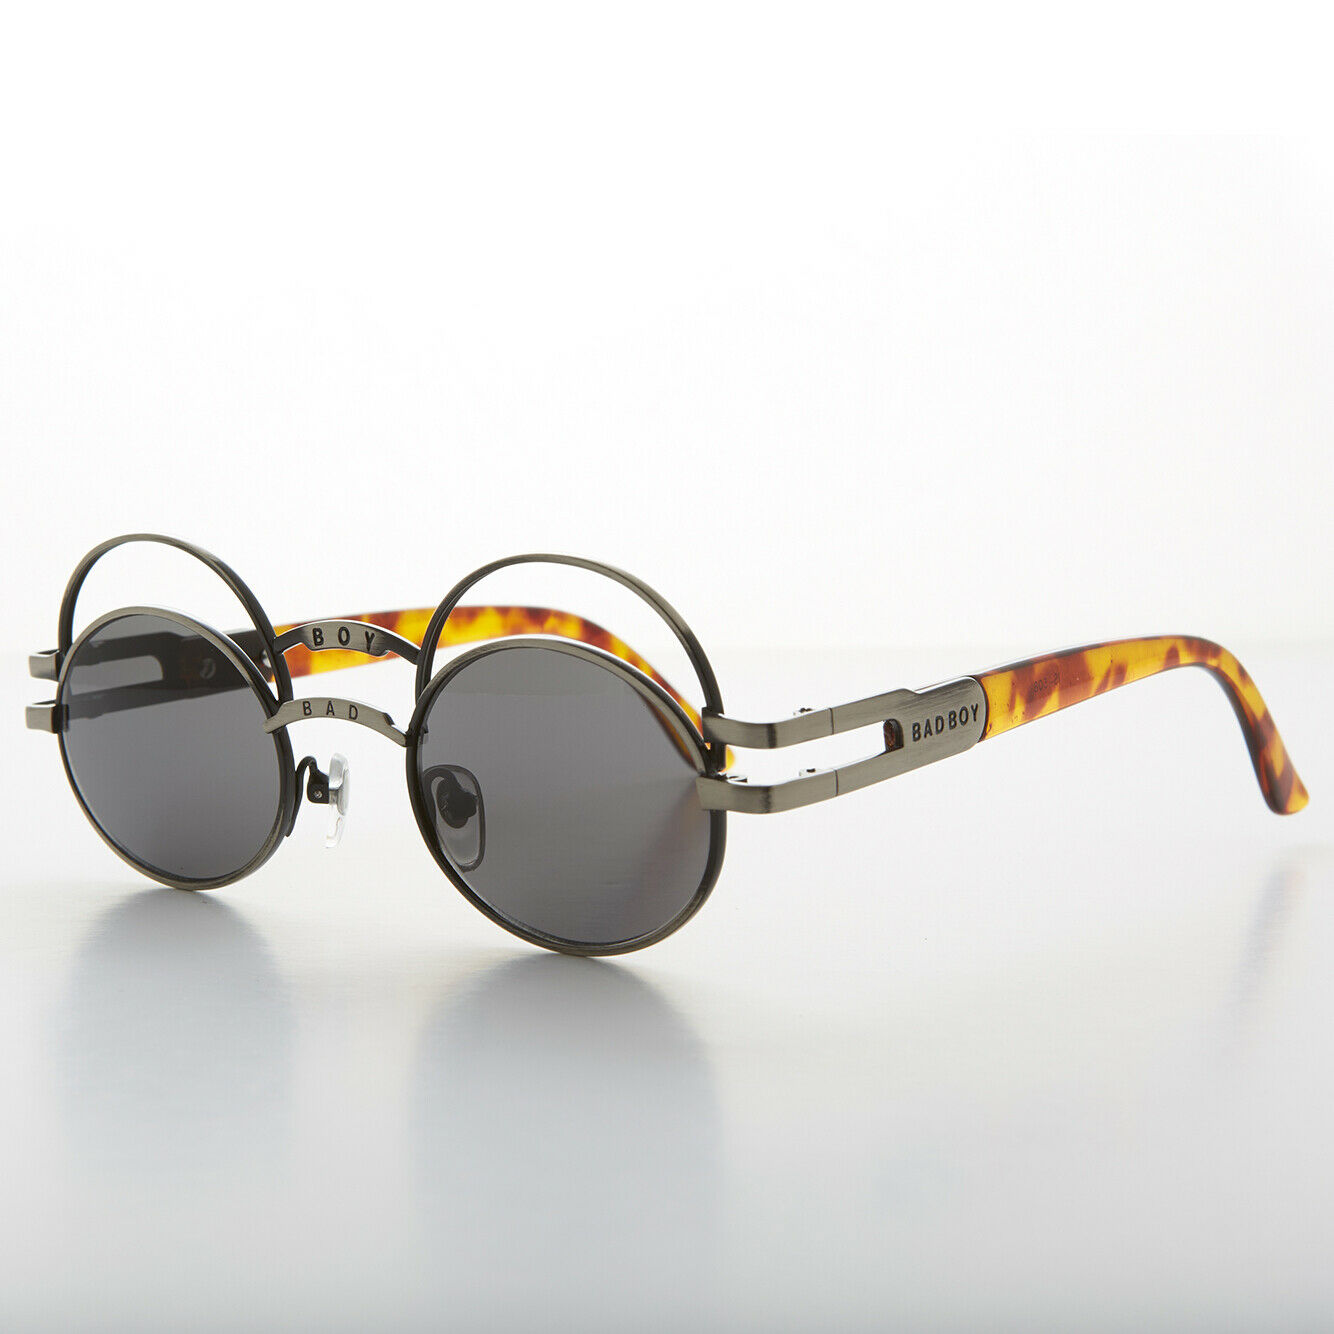 Futuristic Oval Sunglasses with Double Eyelid Gunmetal / Gray Lens - Ace